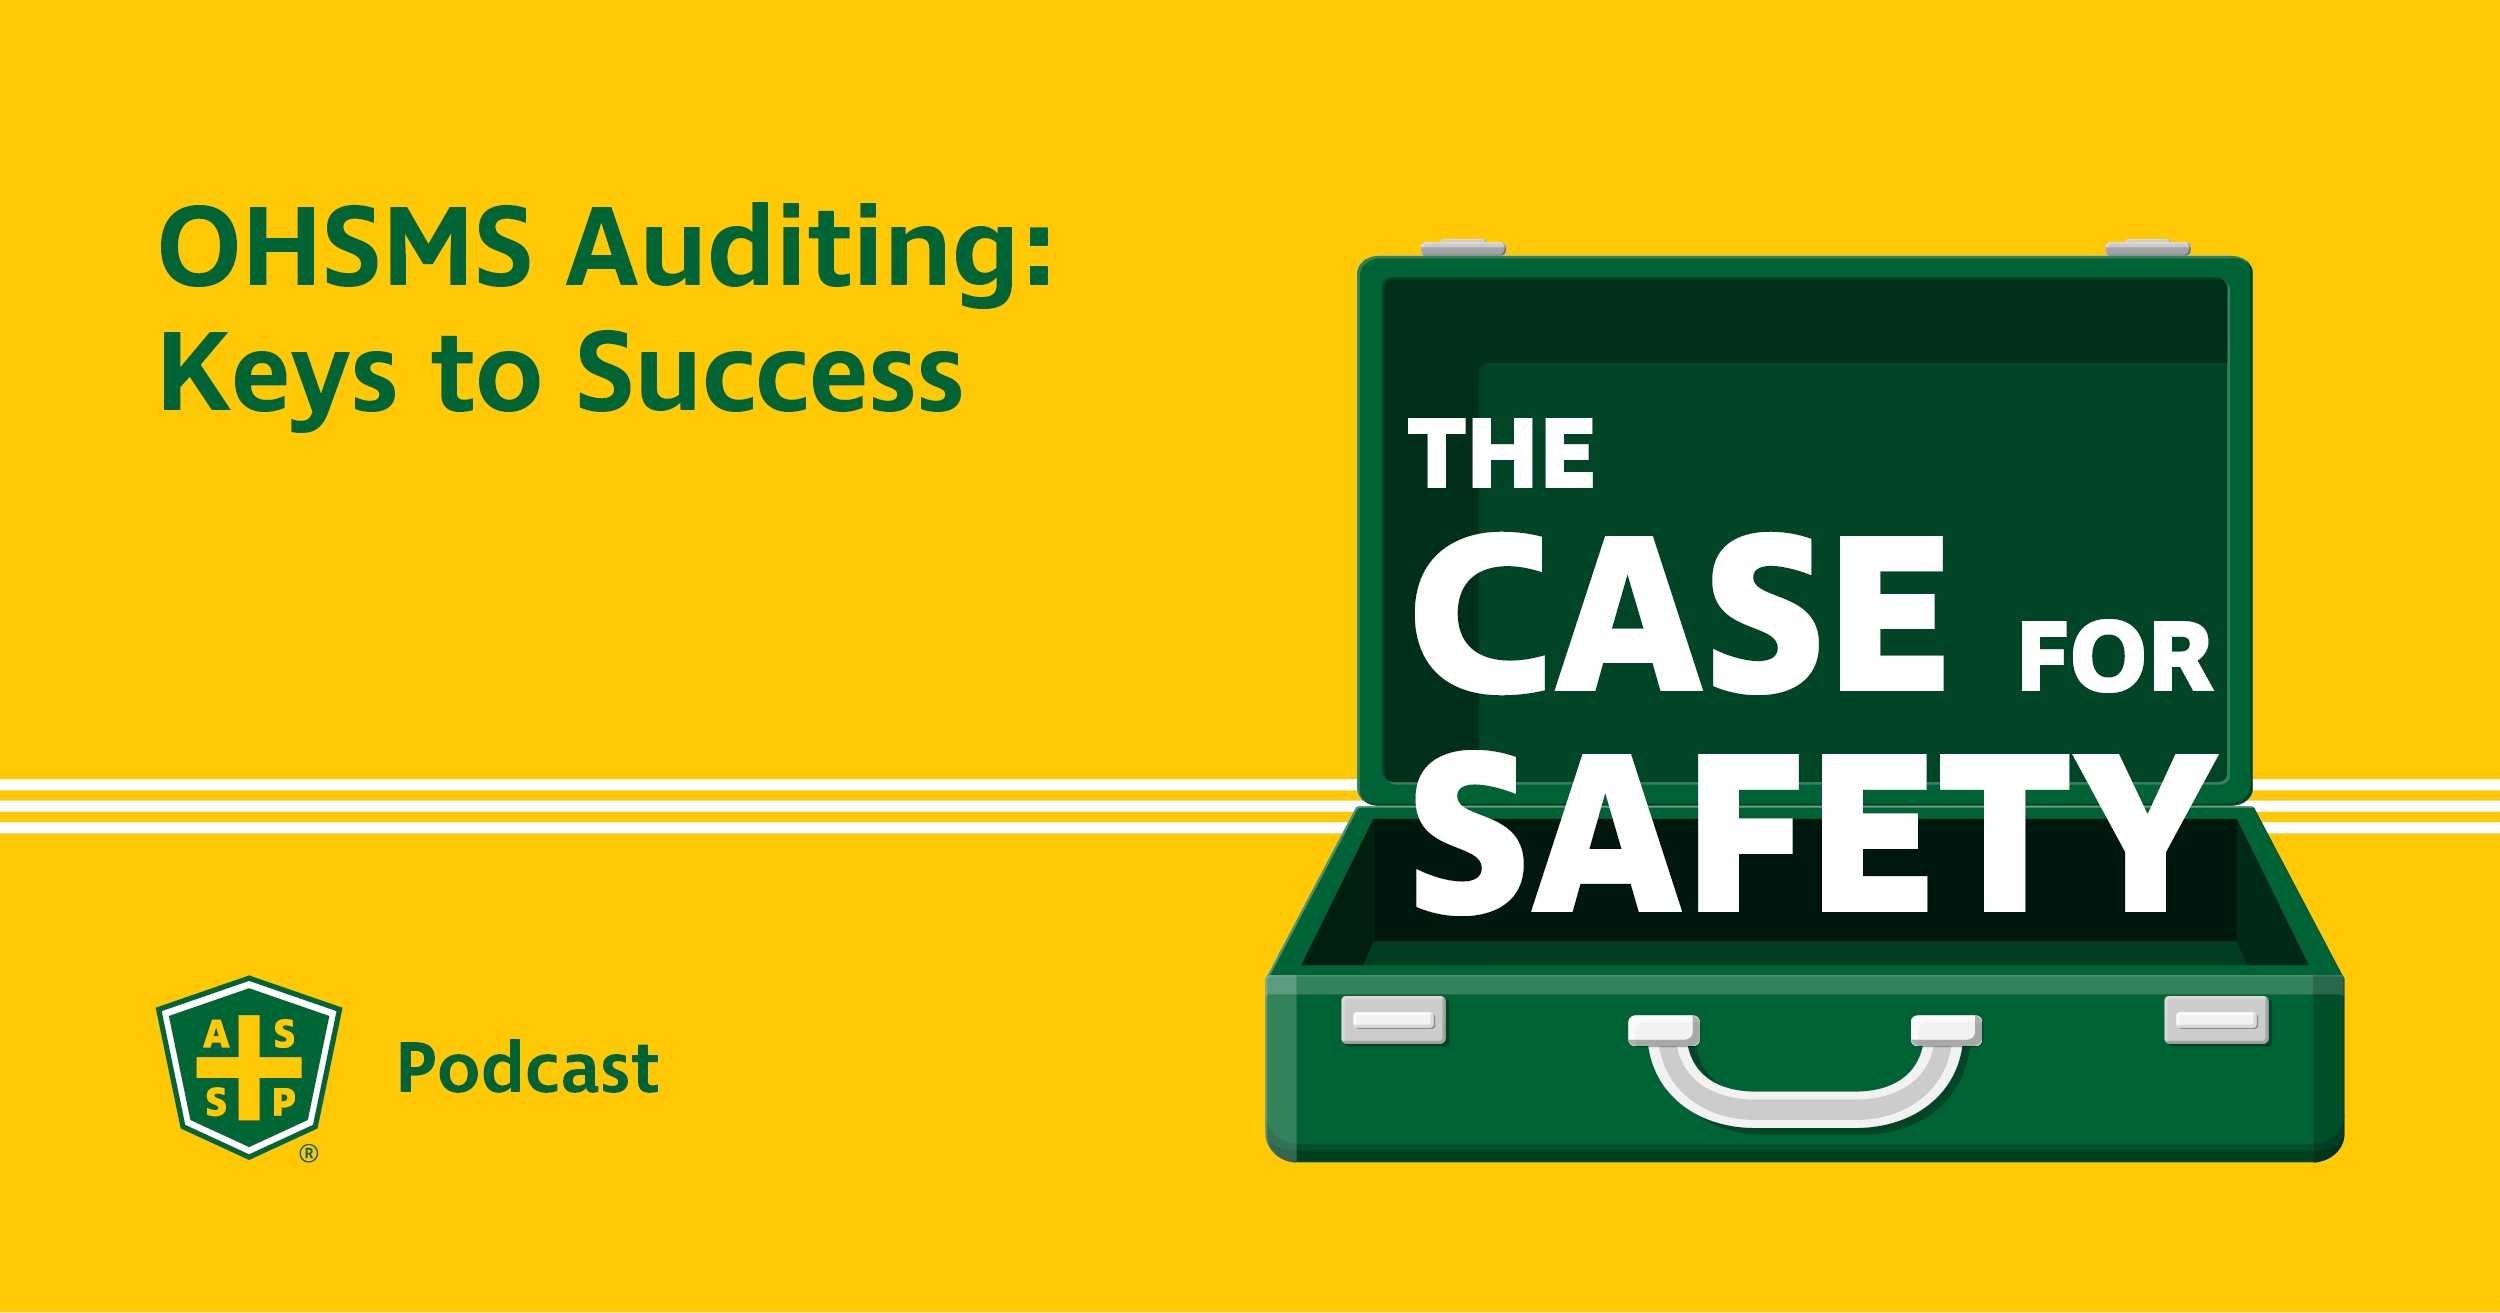 The Case for Safety Podcast Graphic - OHSMS Auditing